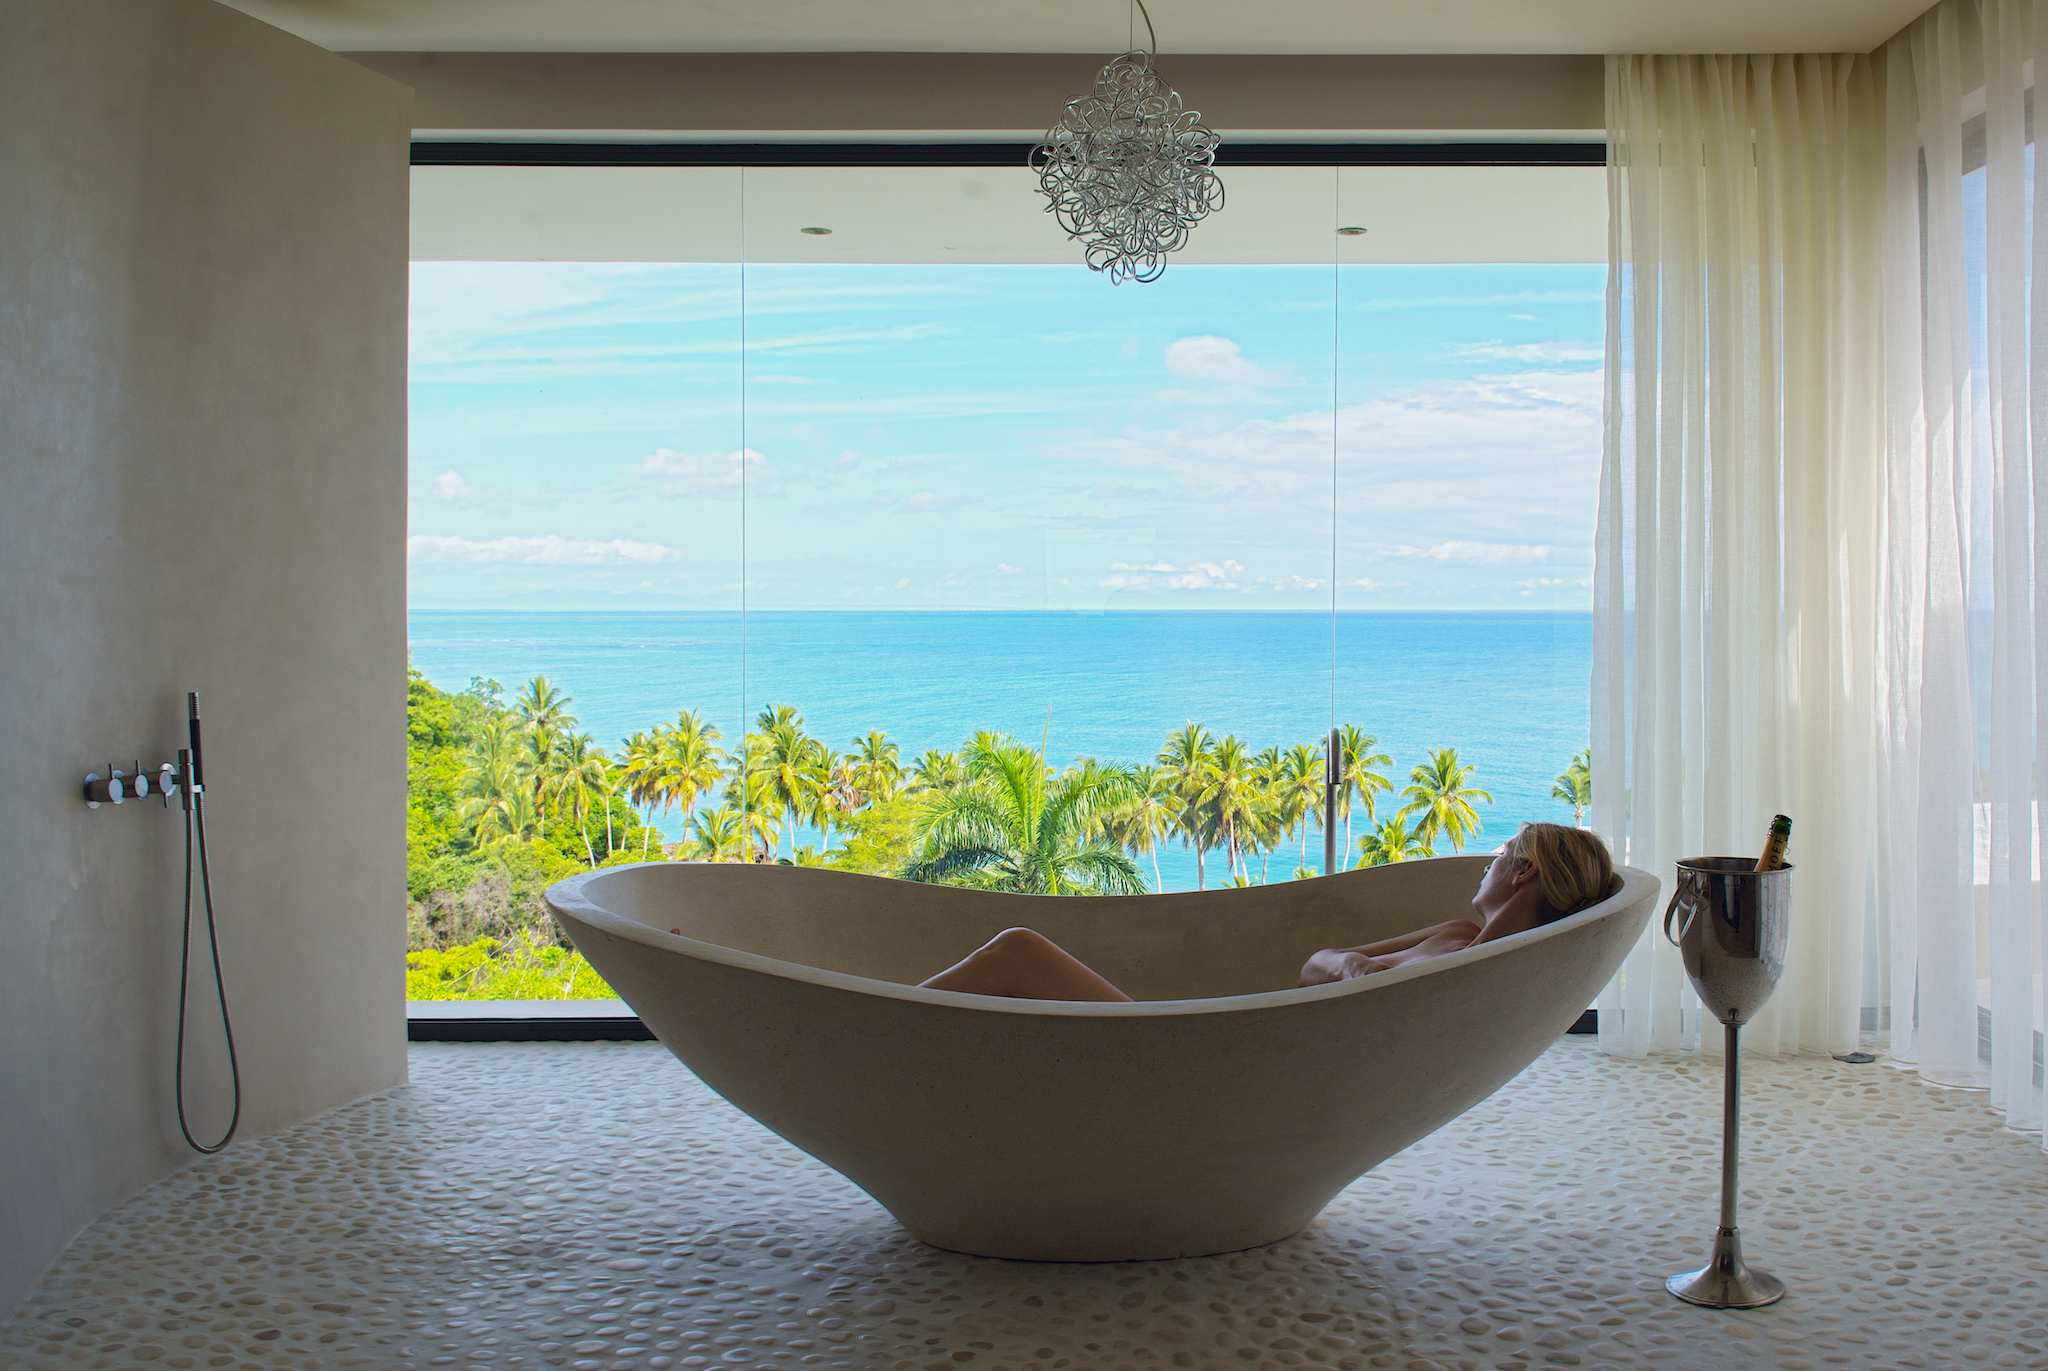 Starting the Day With A Bath Above Las Terrenas: Wish You Were Here